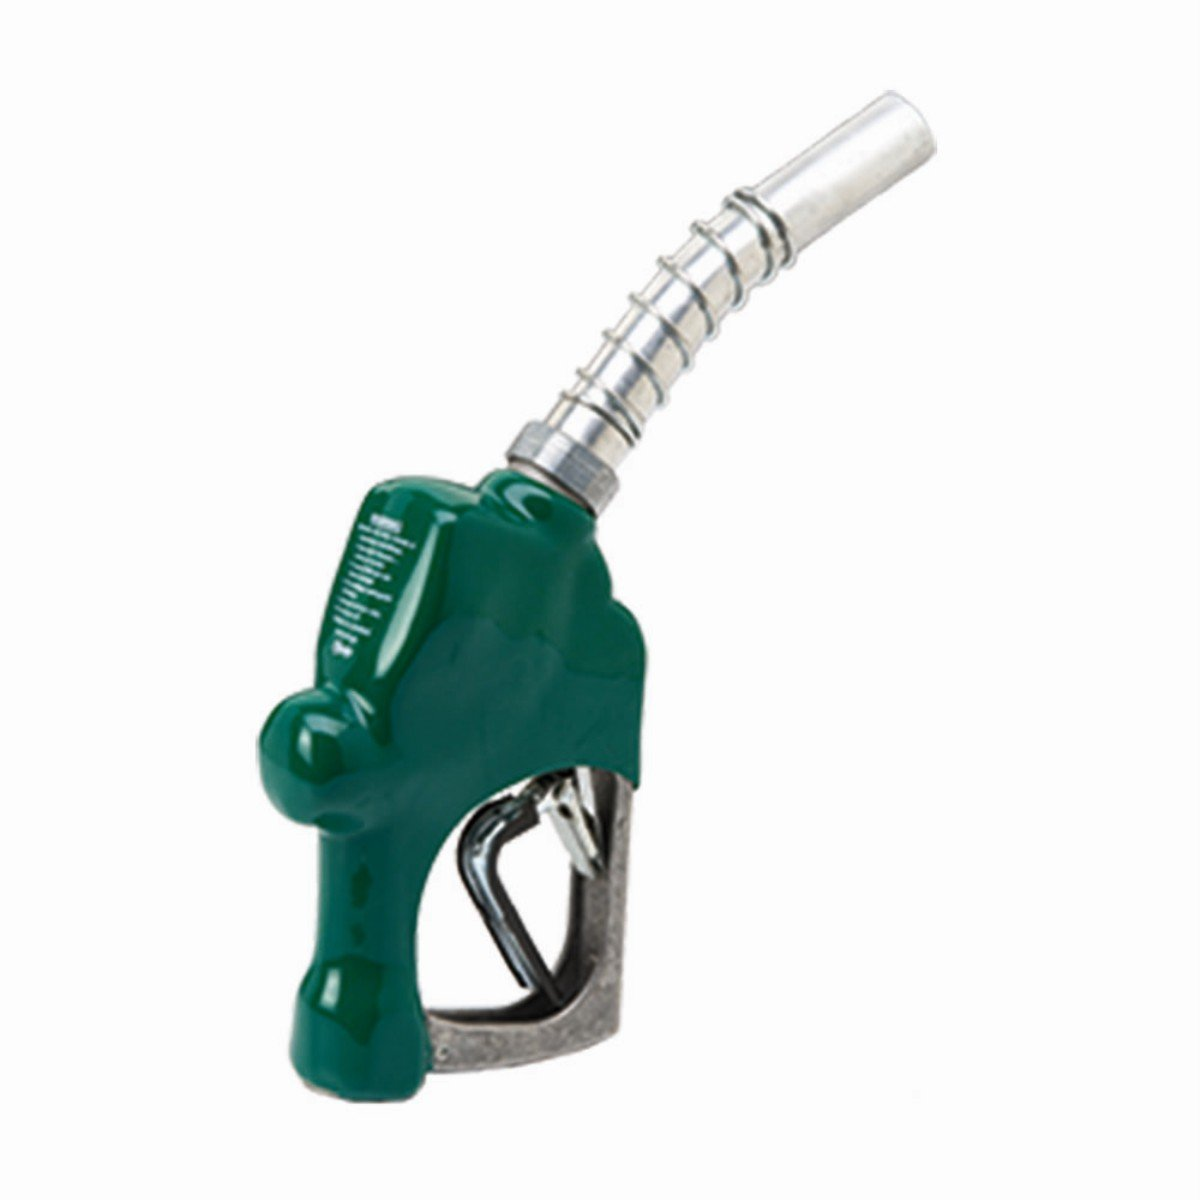 Husky 696310N-03 New 1HS Heavy Duty Diesel Nozzle with 3-Notch Hold Open Clip and Metal Hand Guard by Husky